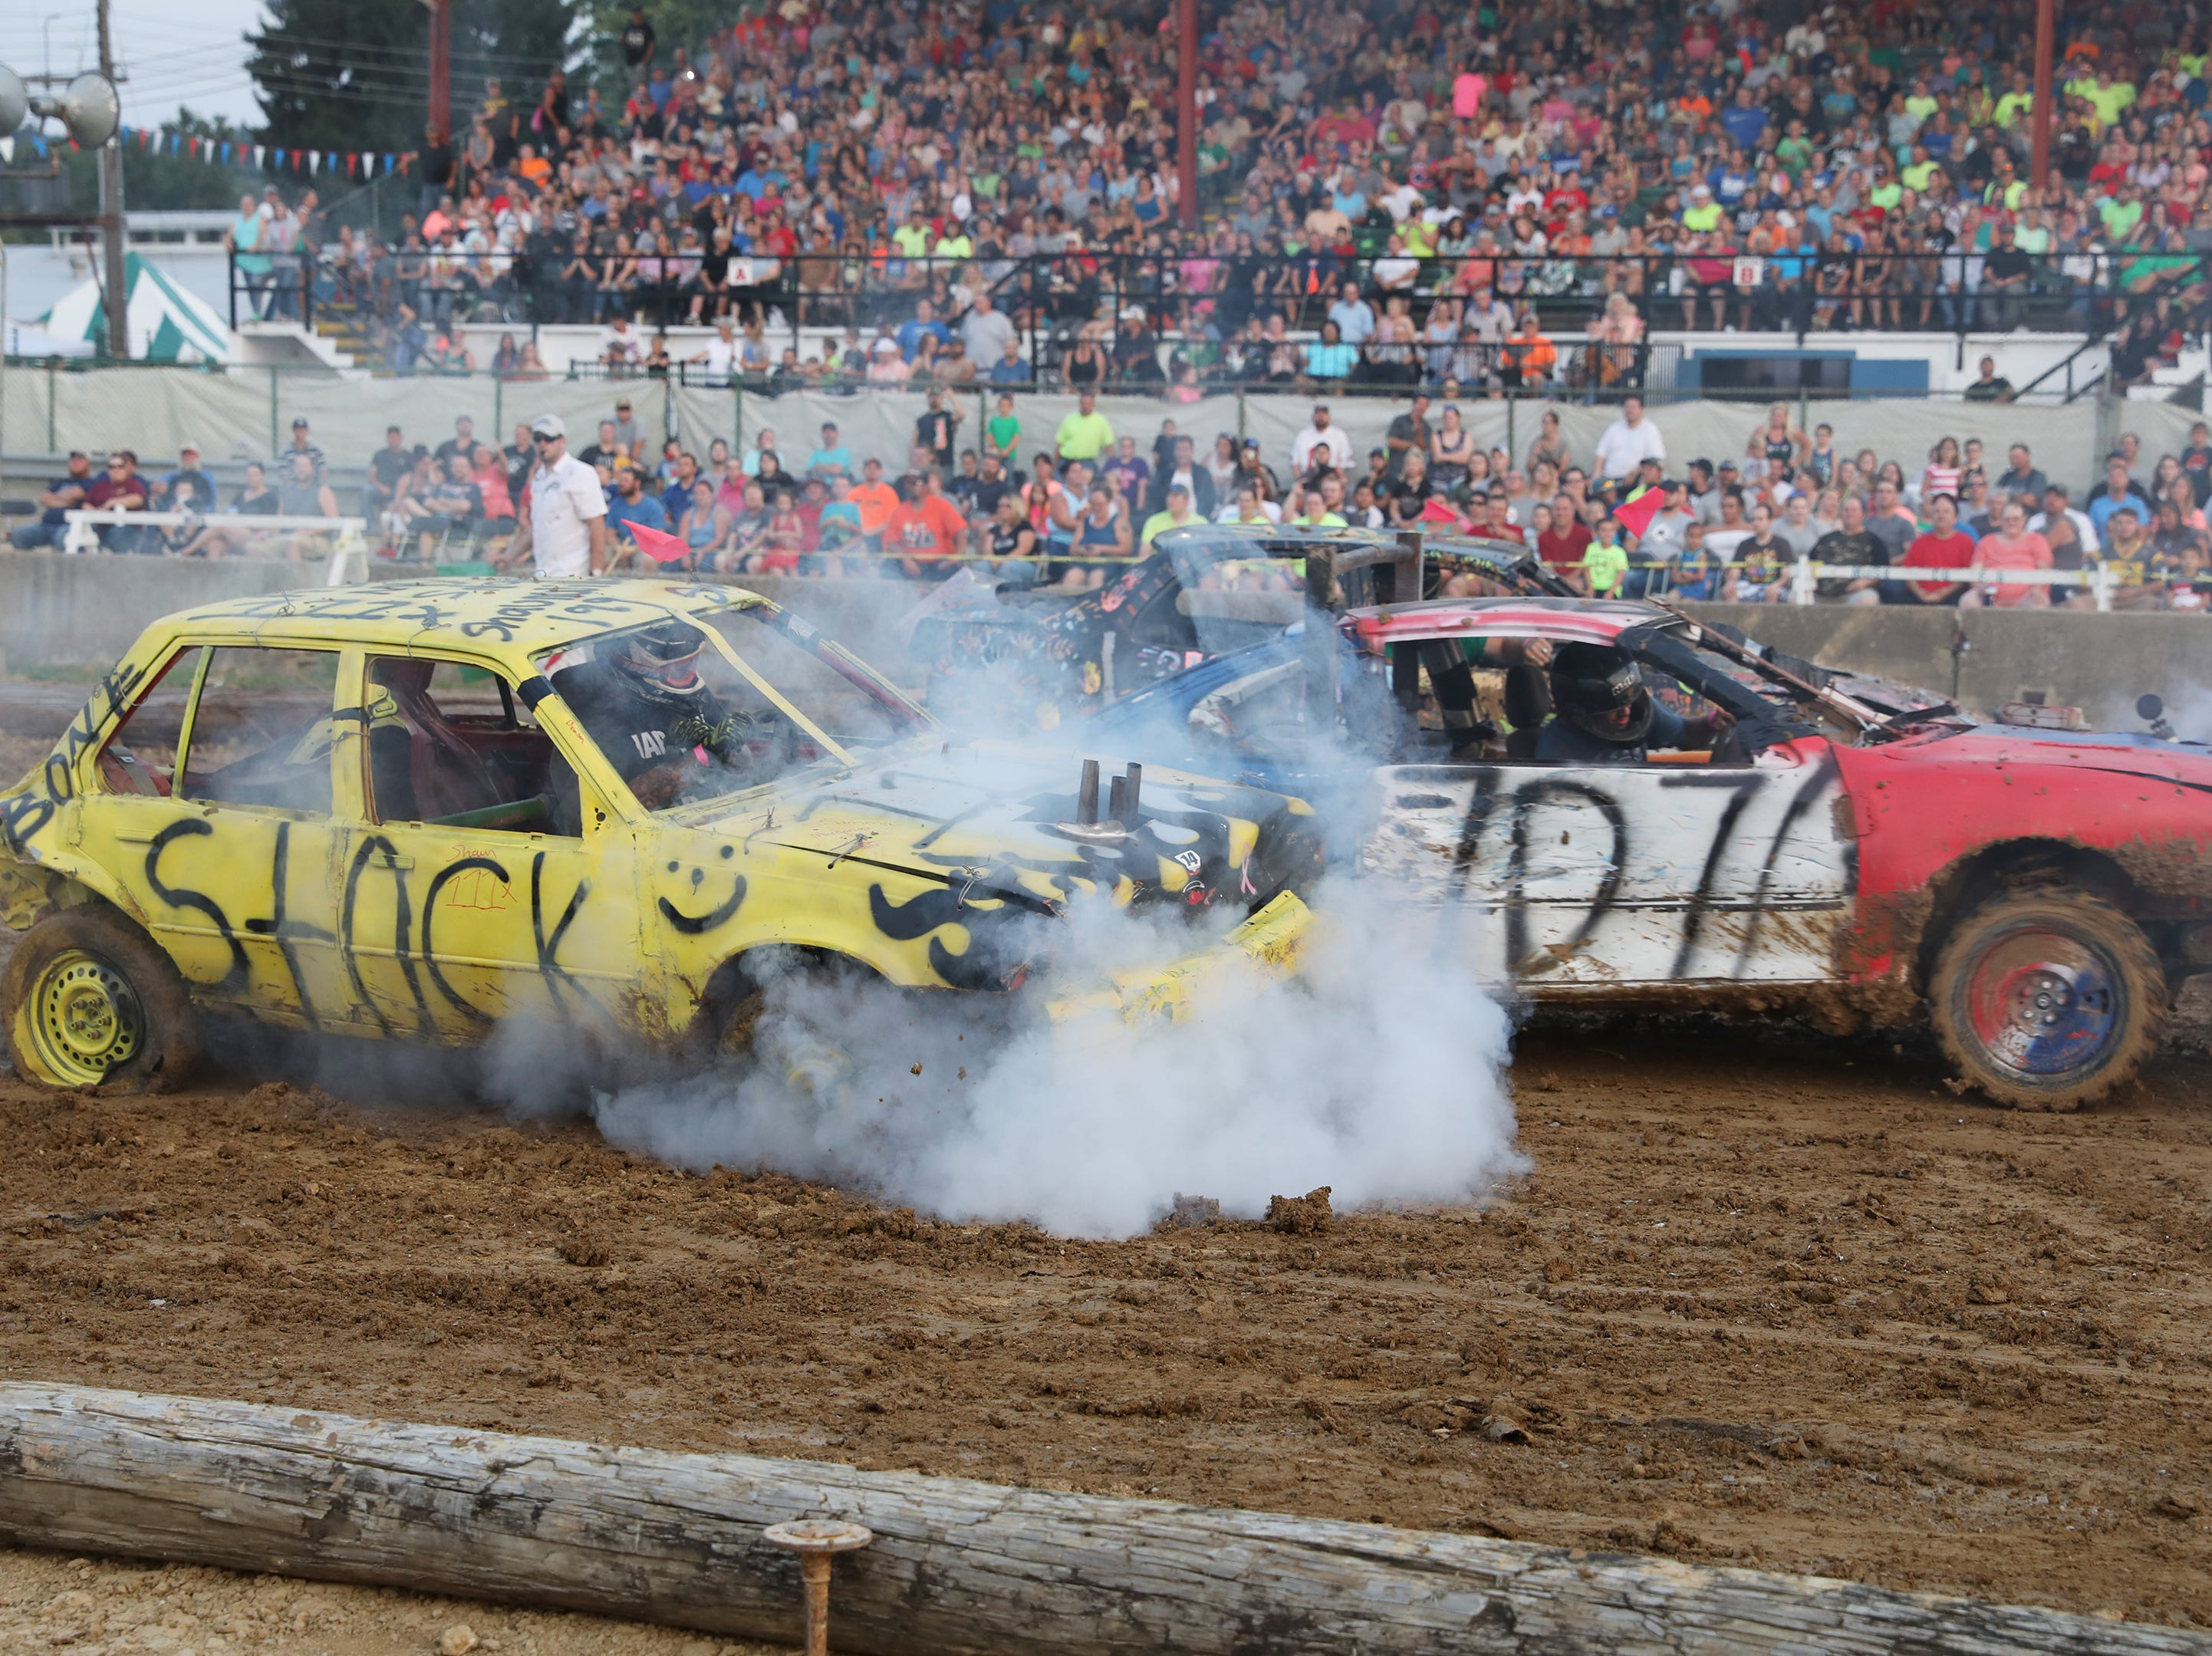 Robert Schriner's 707 car and Shawn Savage's 111x car tangle during the Sarge and Sons Demolition Derby at the Muskingum County Fair on Tuesday.